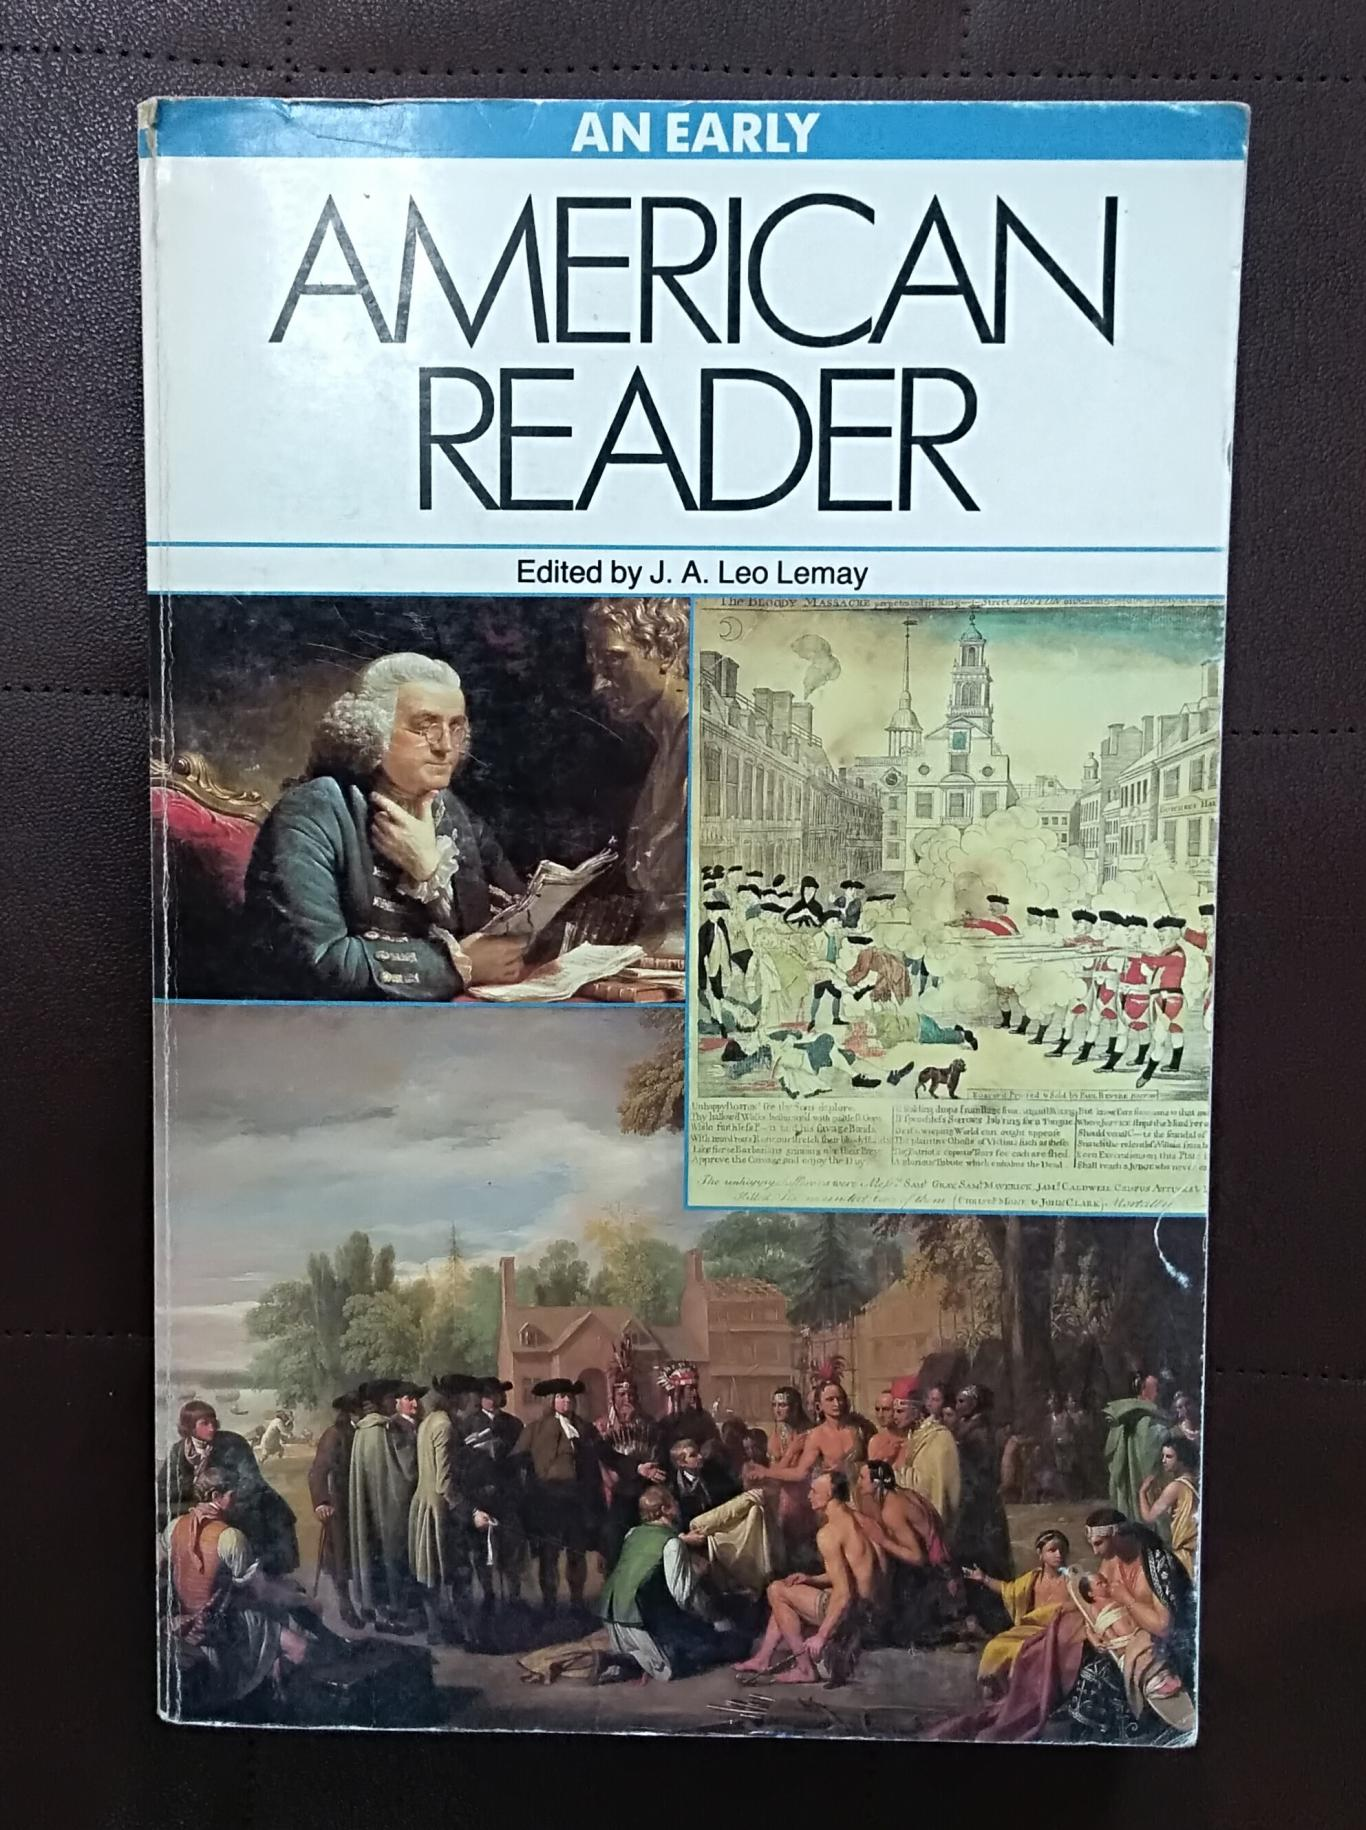 An Early American Reader, J. A. Leo Lemay